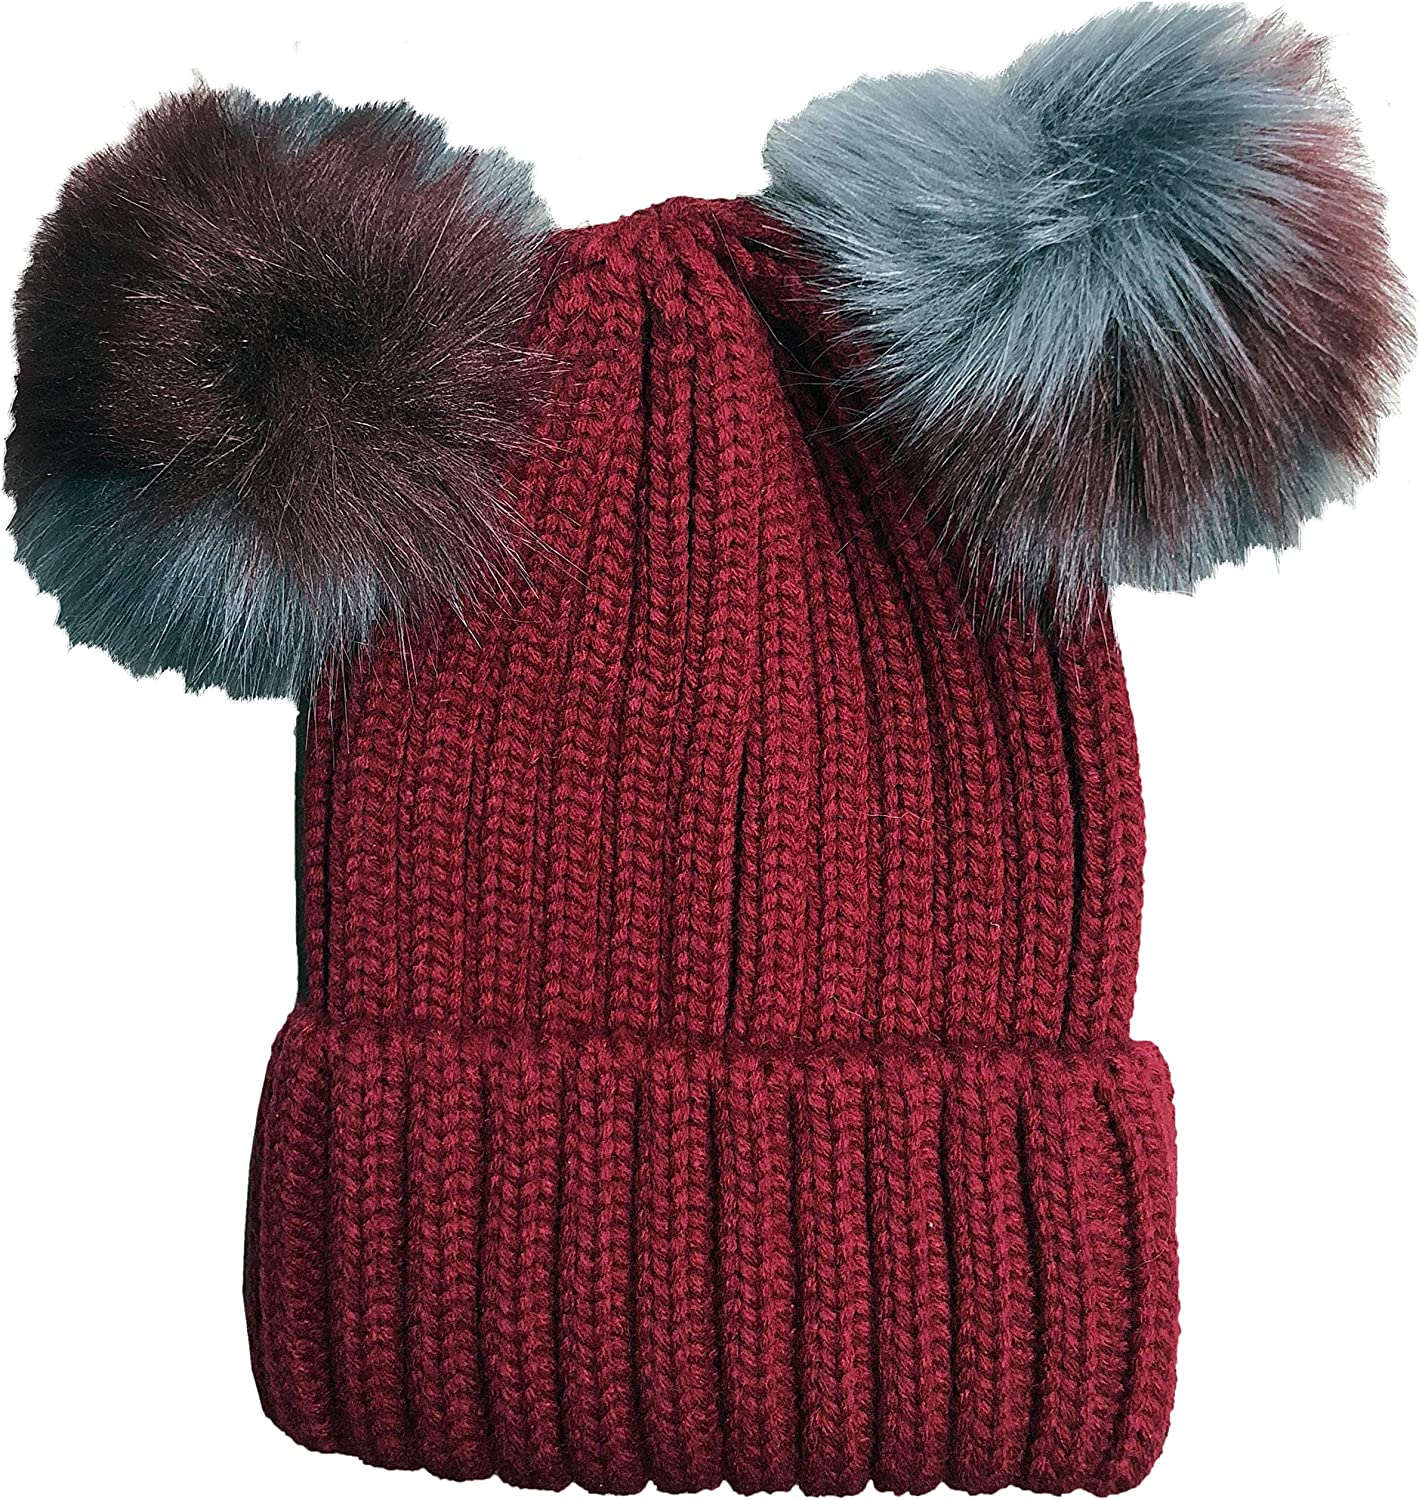 Yacht Smith Winter Beanies Wholesale Unisex Cold San Francisco Mall Max 85% OFF Weather Bulk